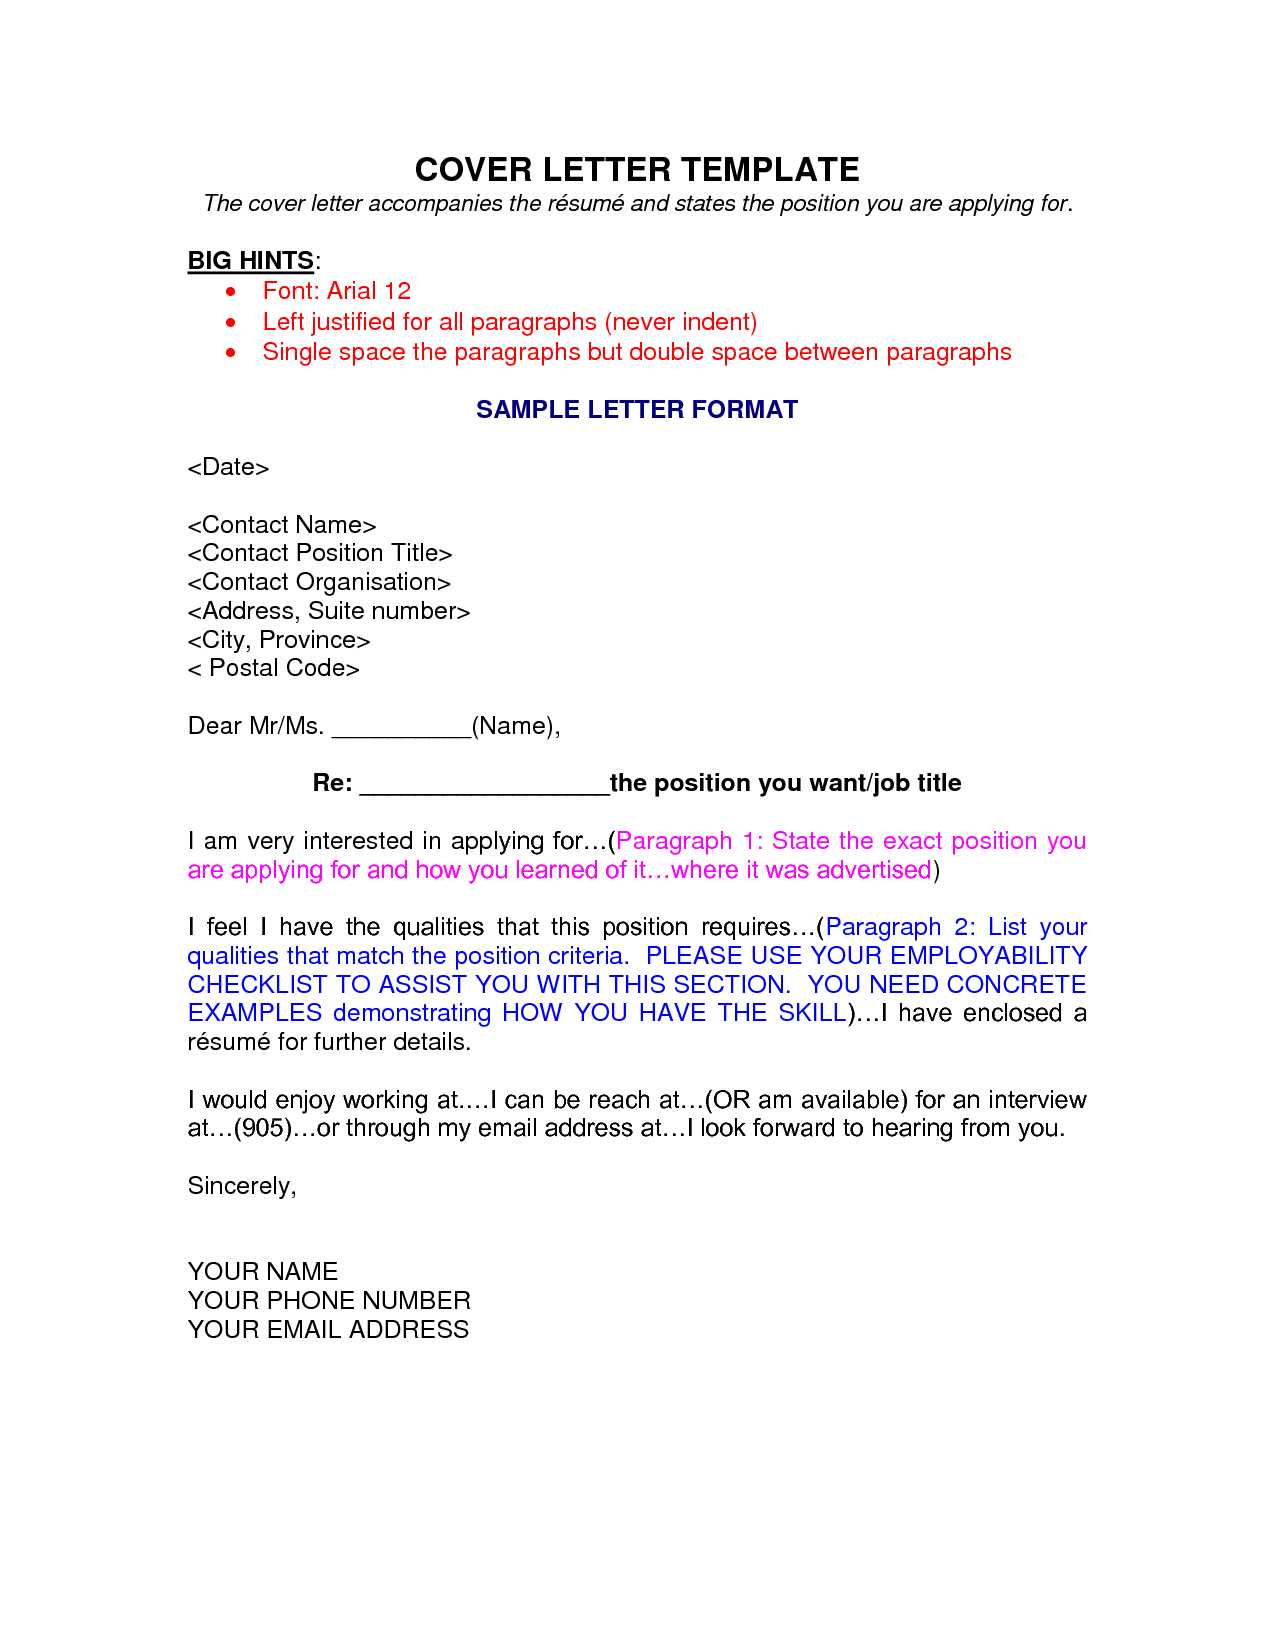 simple cover letter examples microsoft cover letter template for simple cover letter examples microsoft cover letter examplesdoc washington state cover letters cv cover letter templates